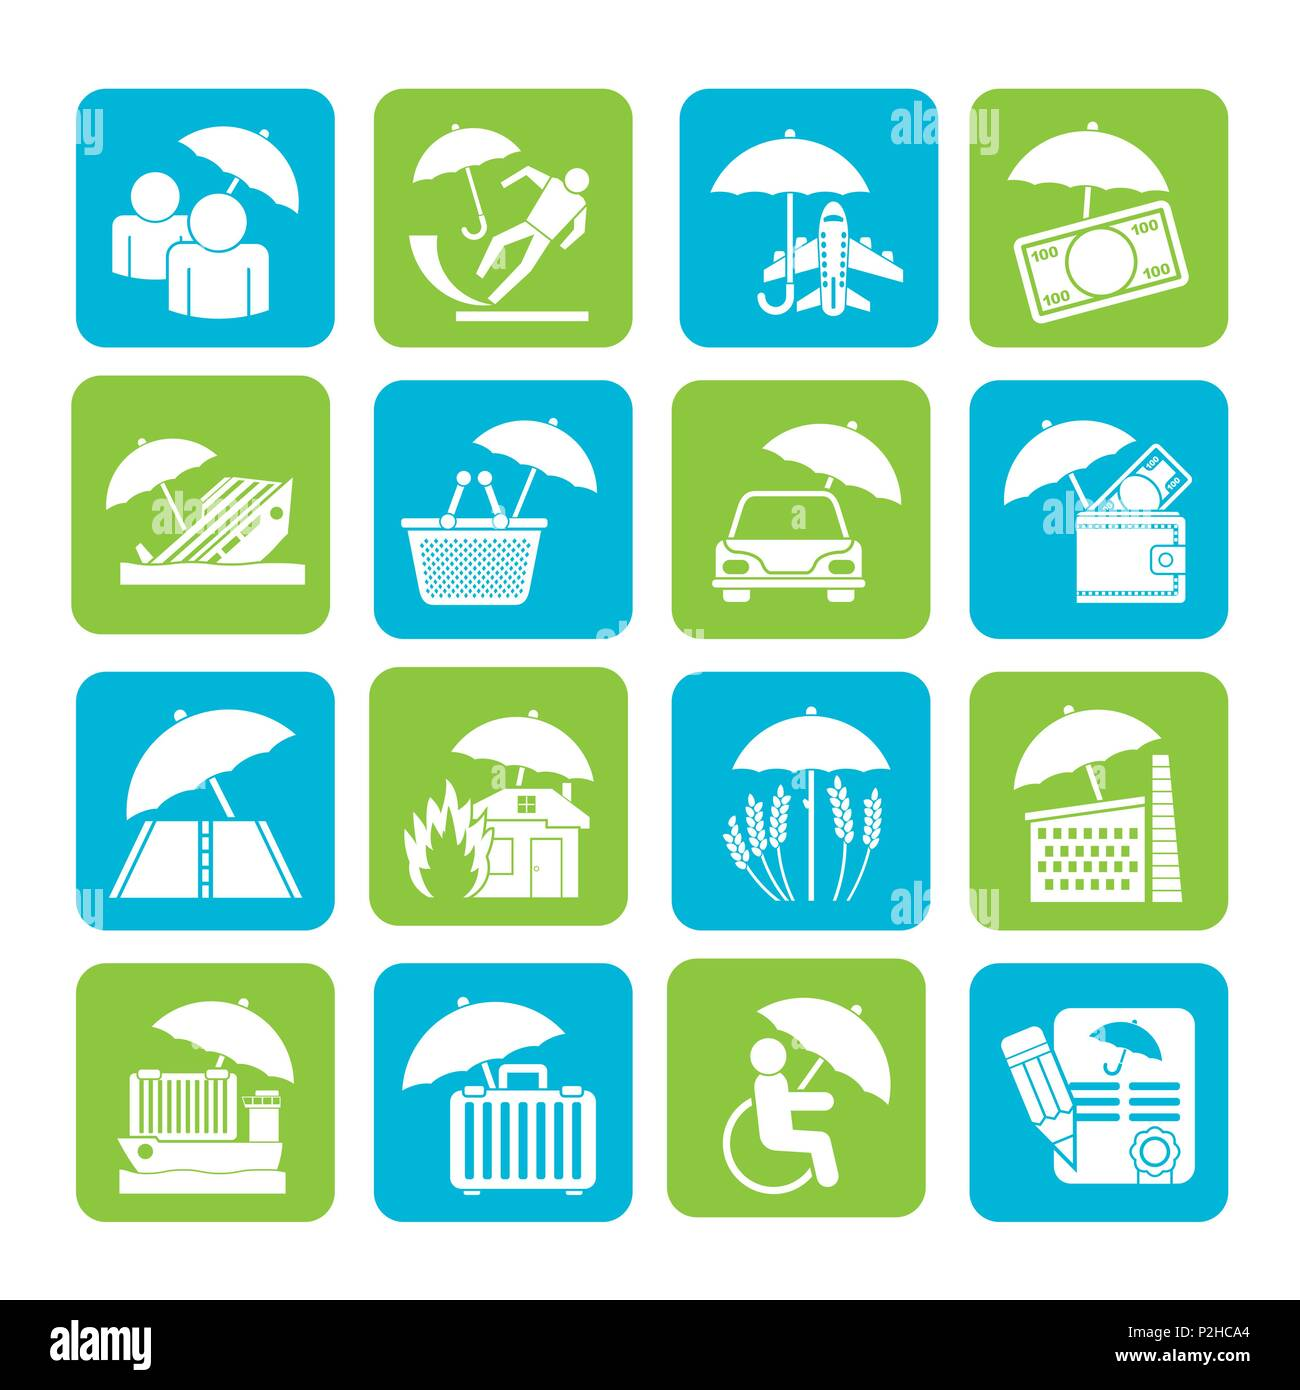 Silhouette Insurance Risk And Business Icons Vector Icon Set